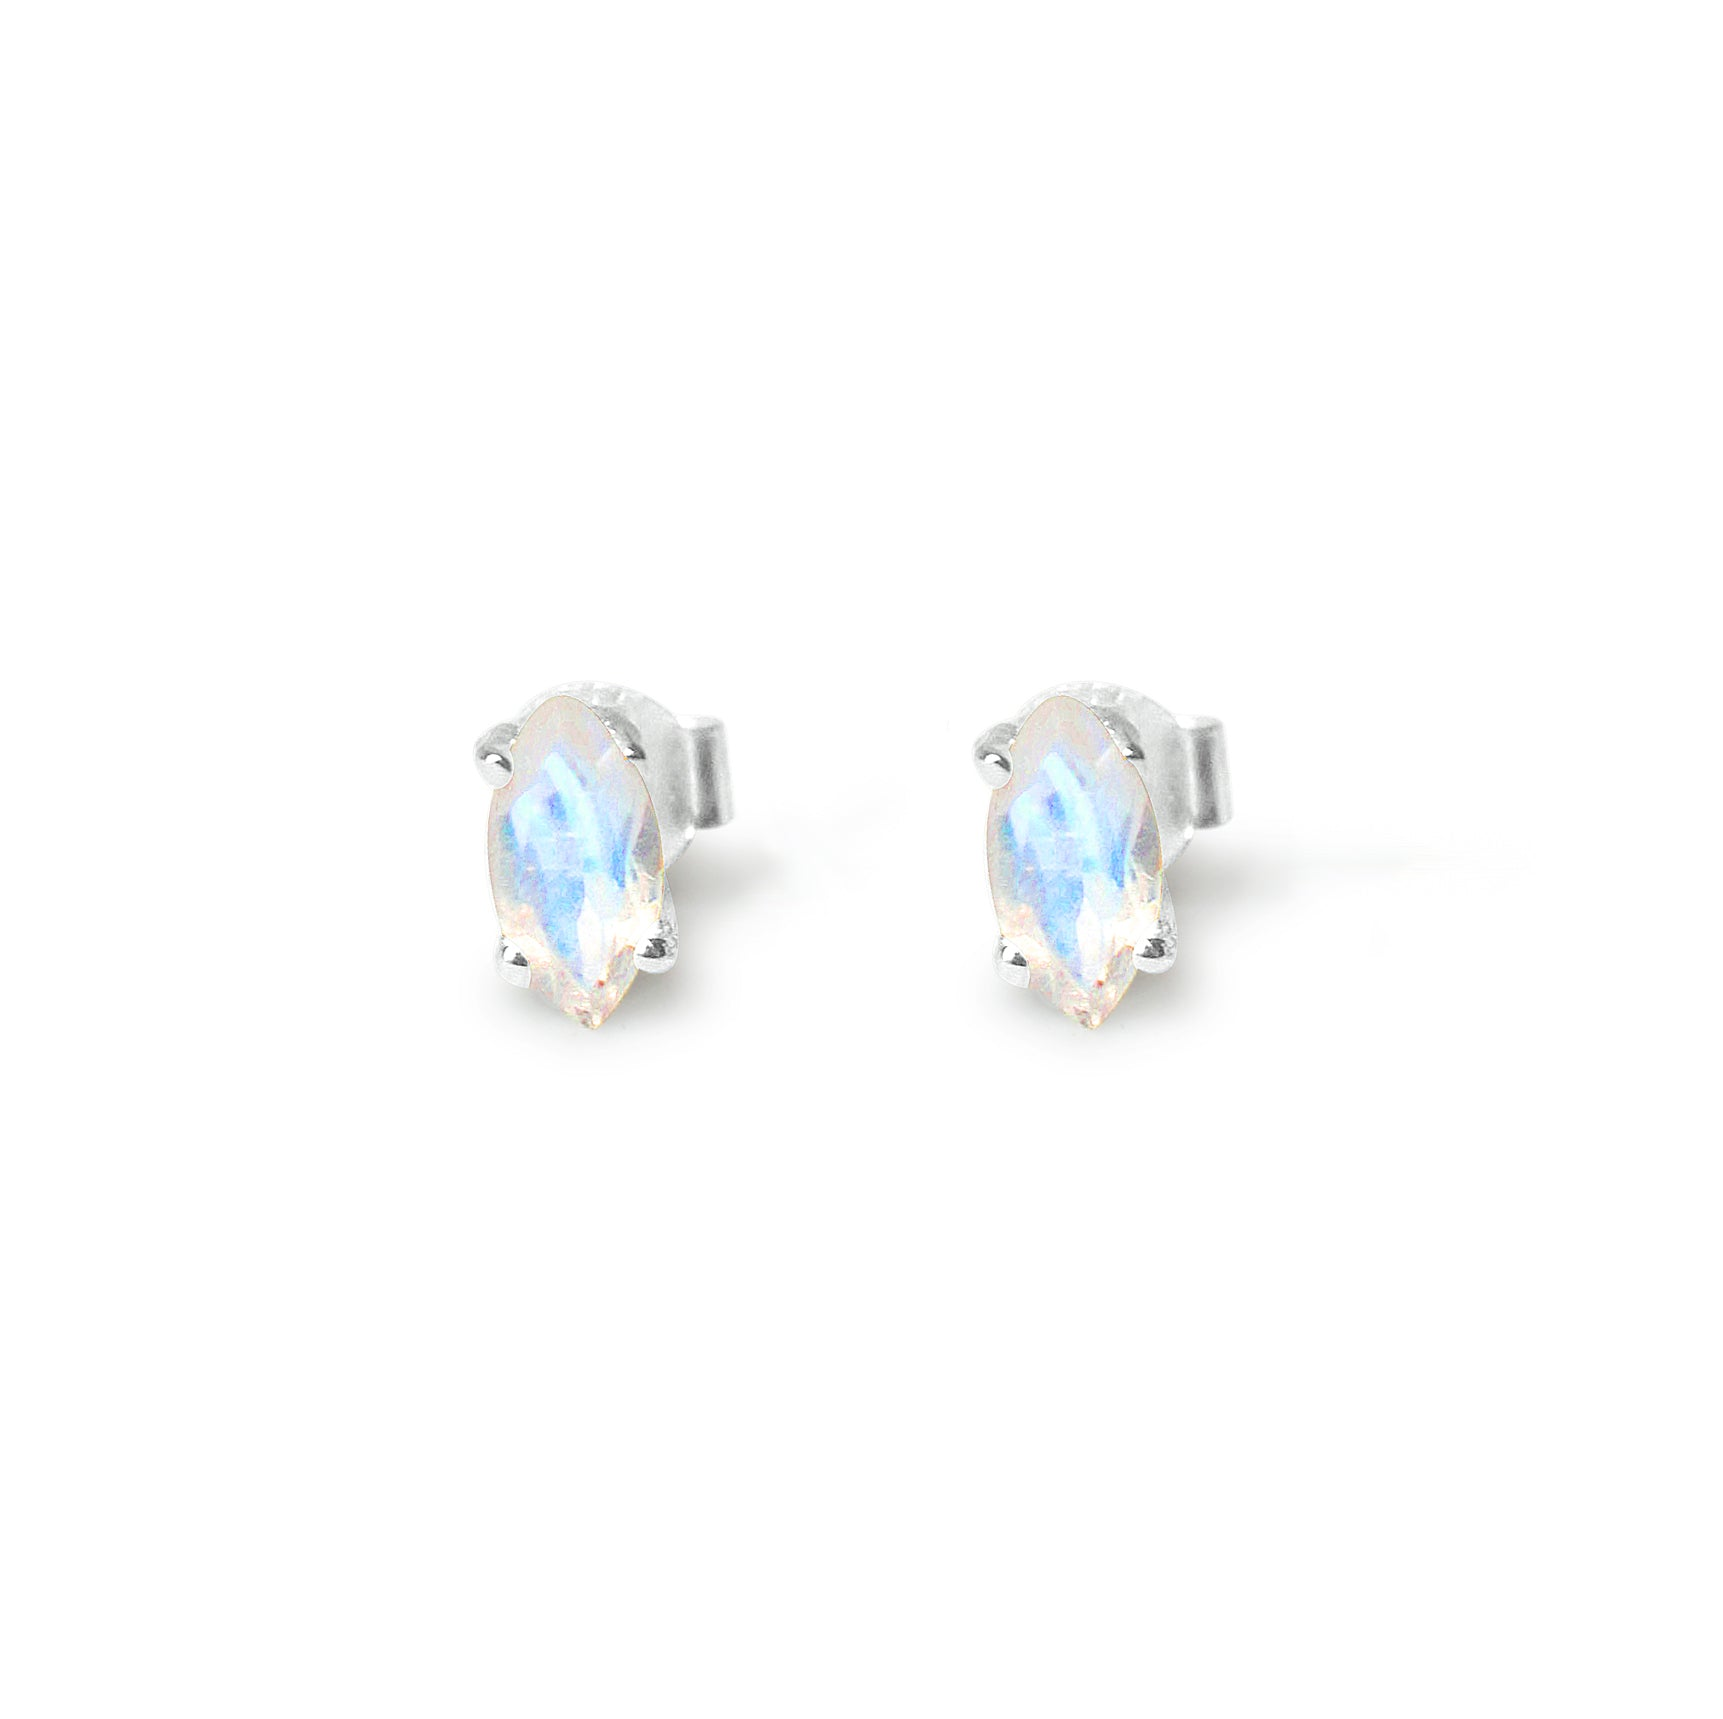 925 Silver Classic Series Earrings - Marquise 8x4mm (Moonstone)